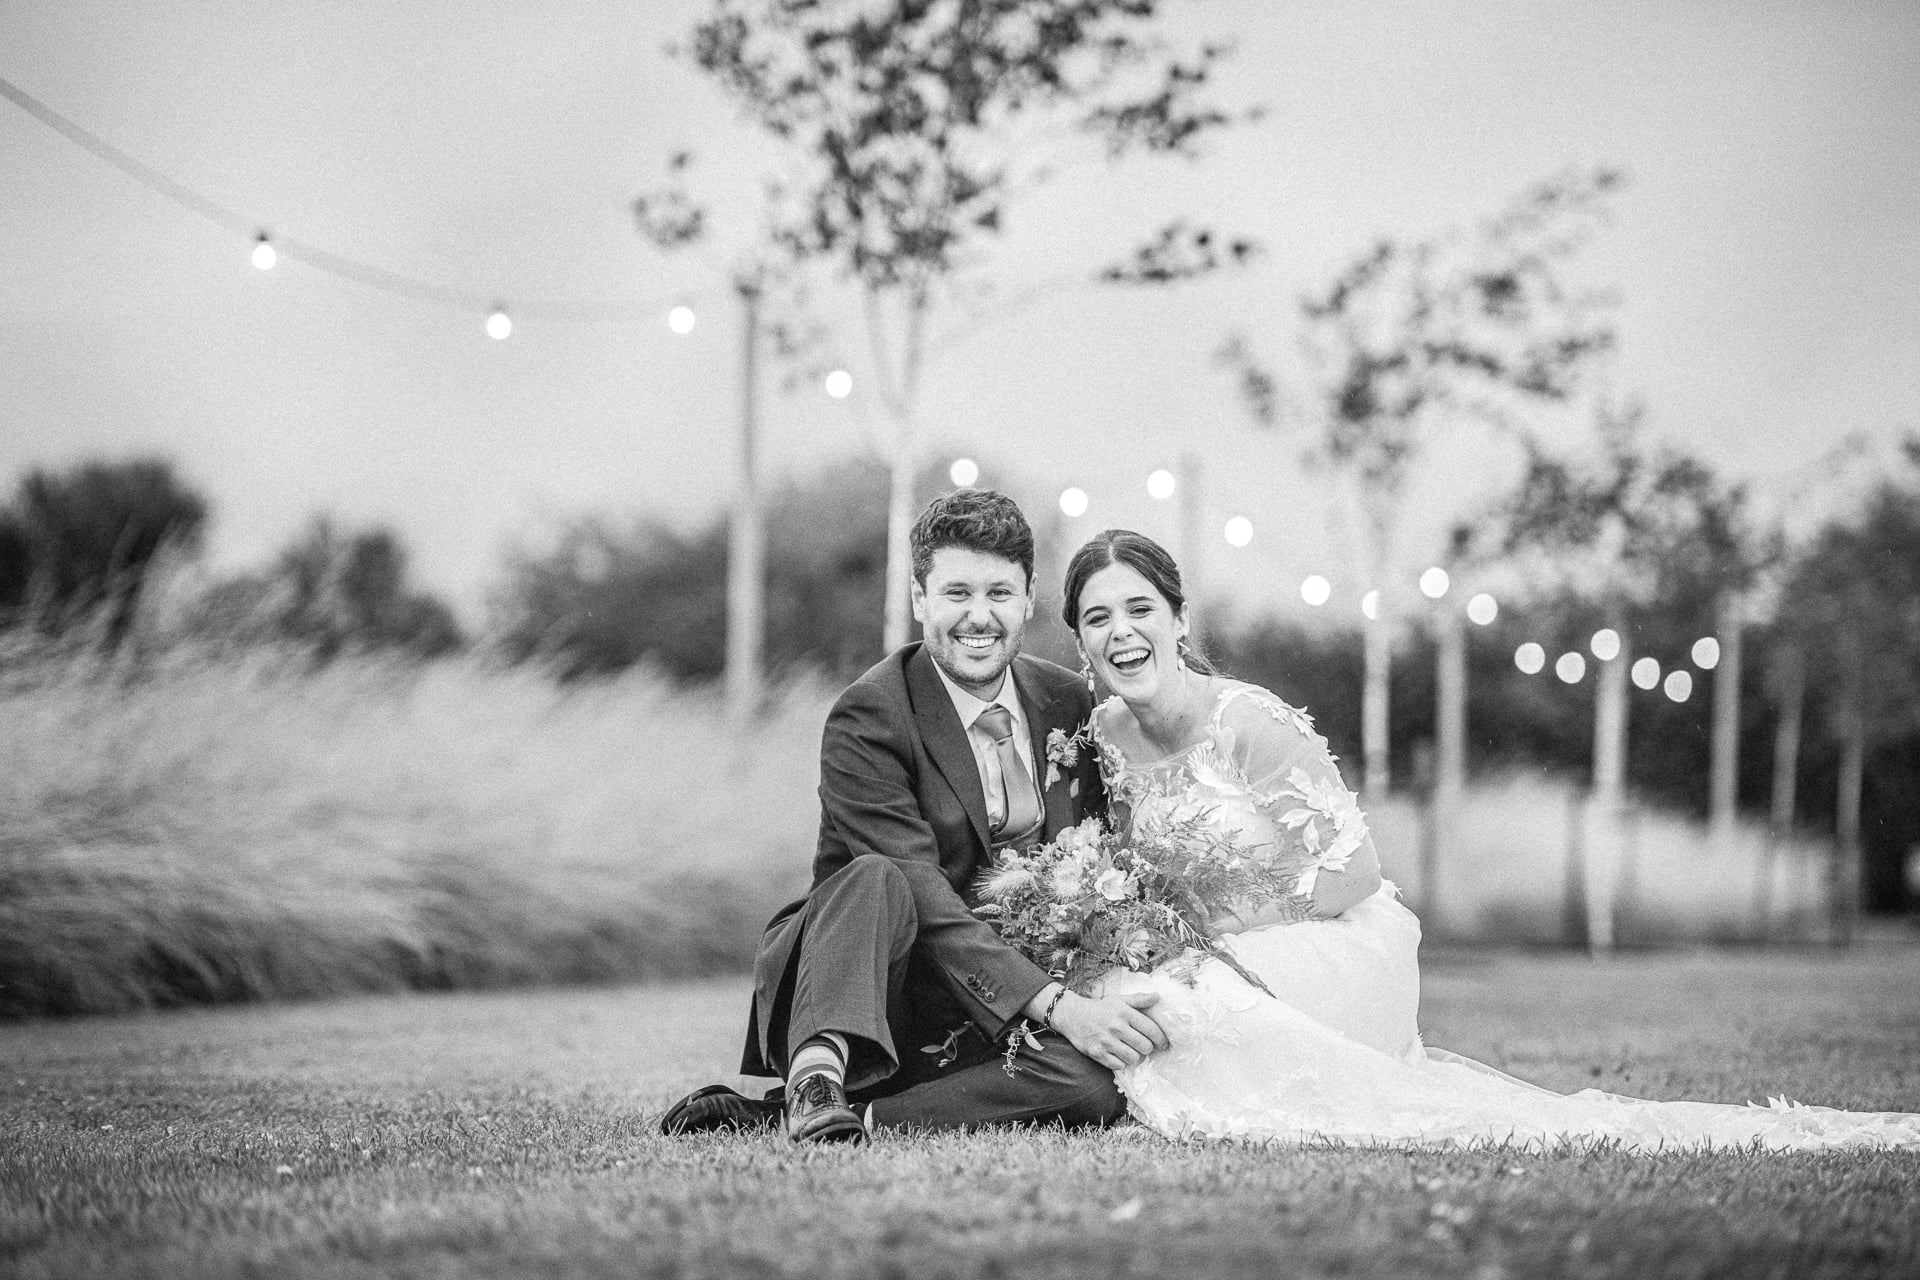 B&A wedding day - Oaktree farm outdoor wedding venue in nottinghamshire / lincolnshire - couple sitting on the grass laughing